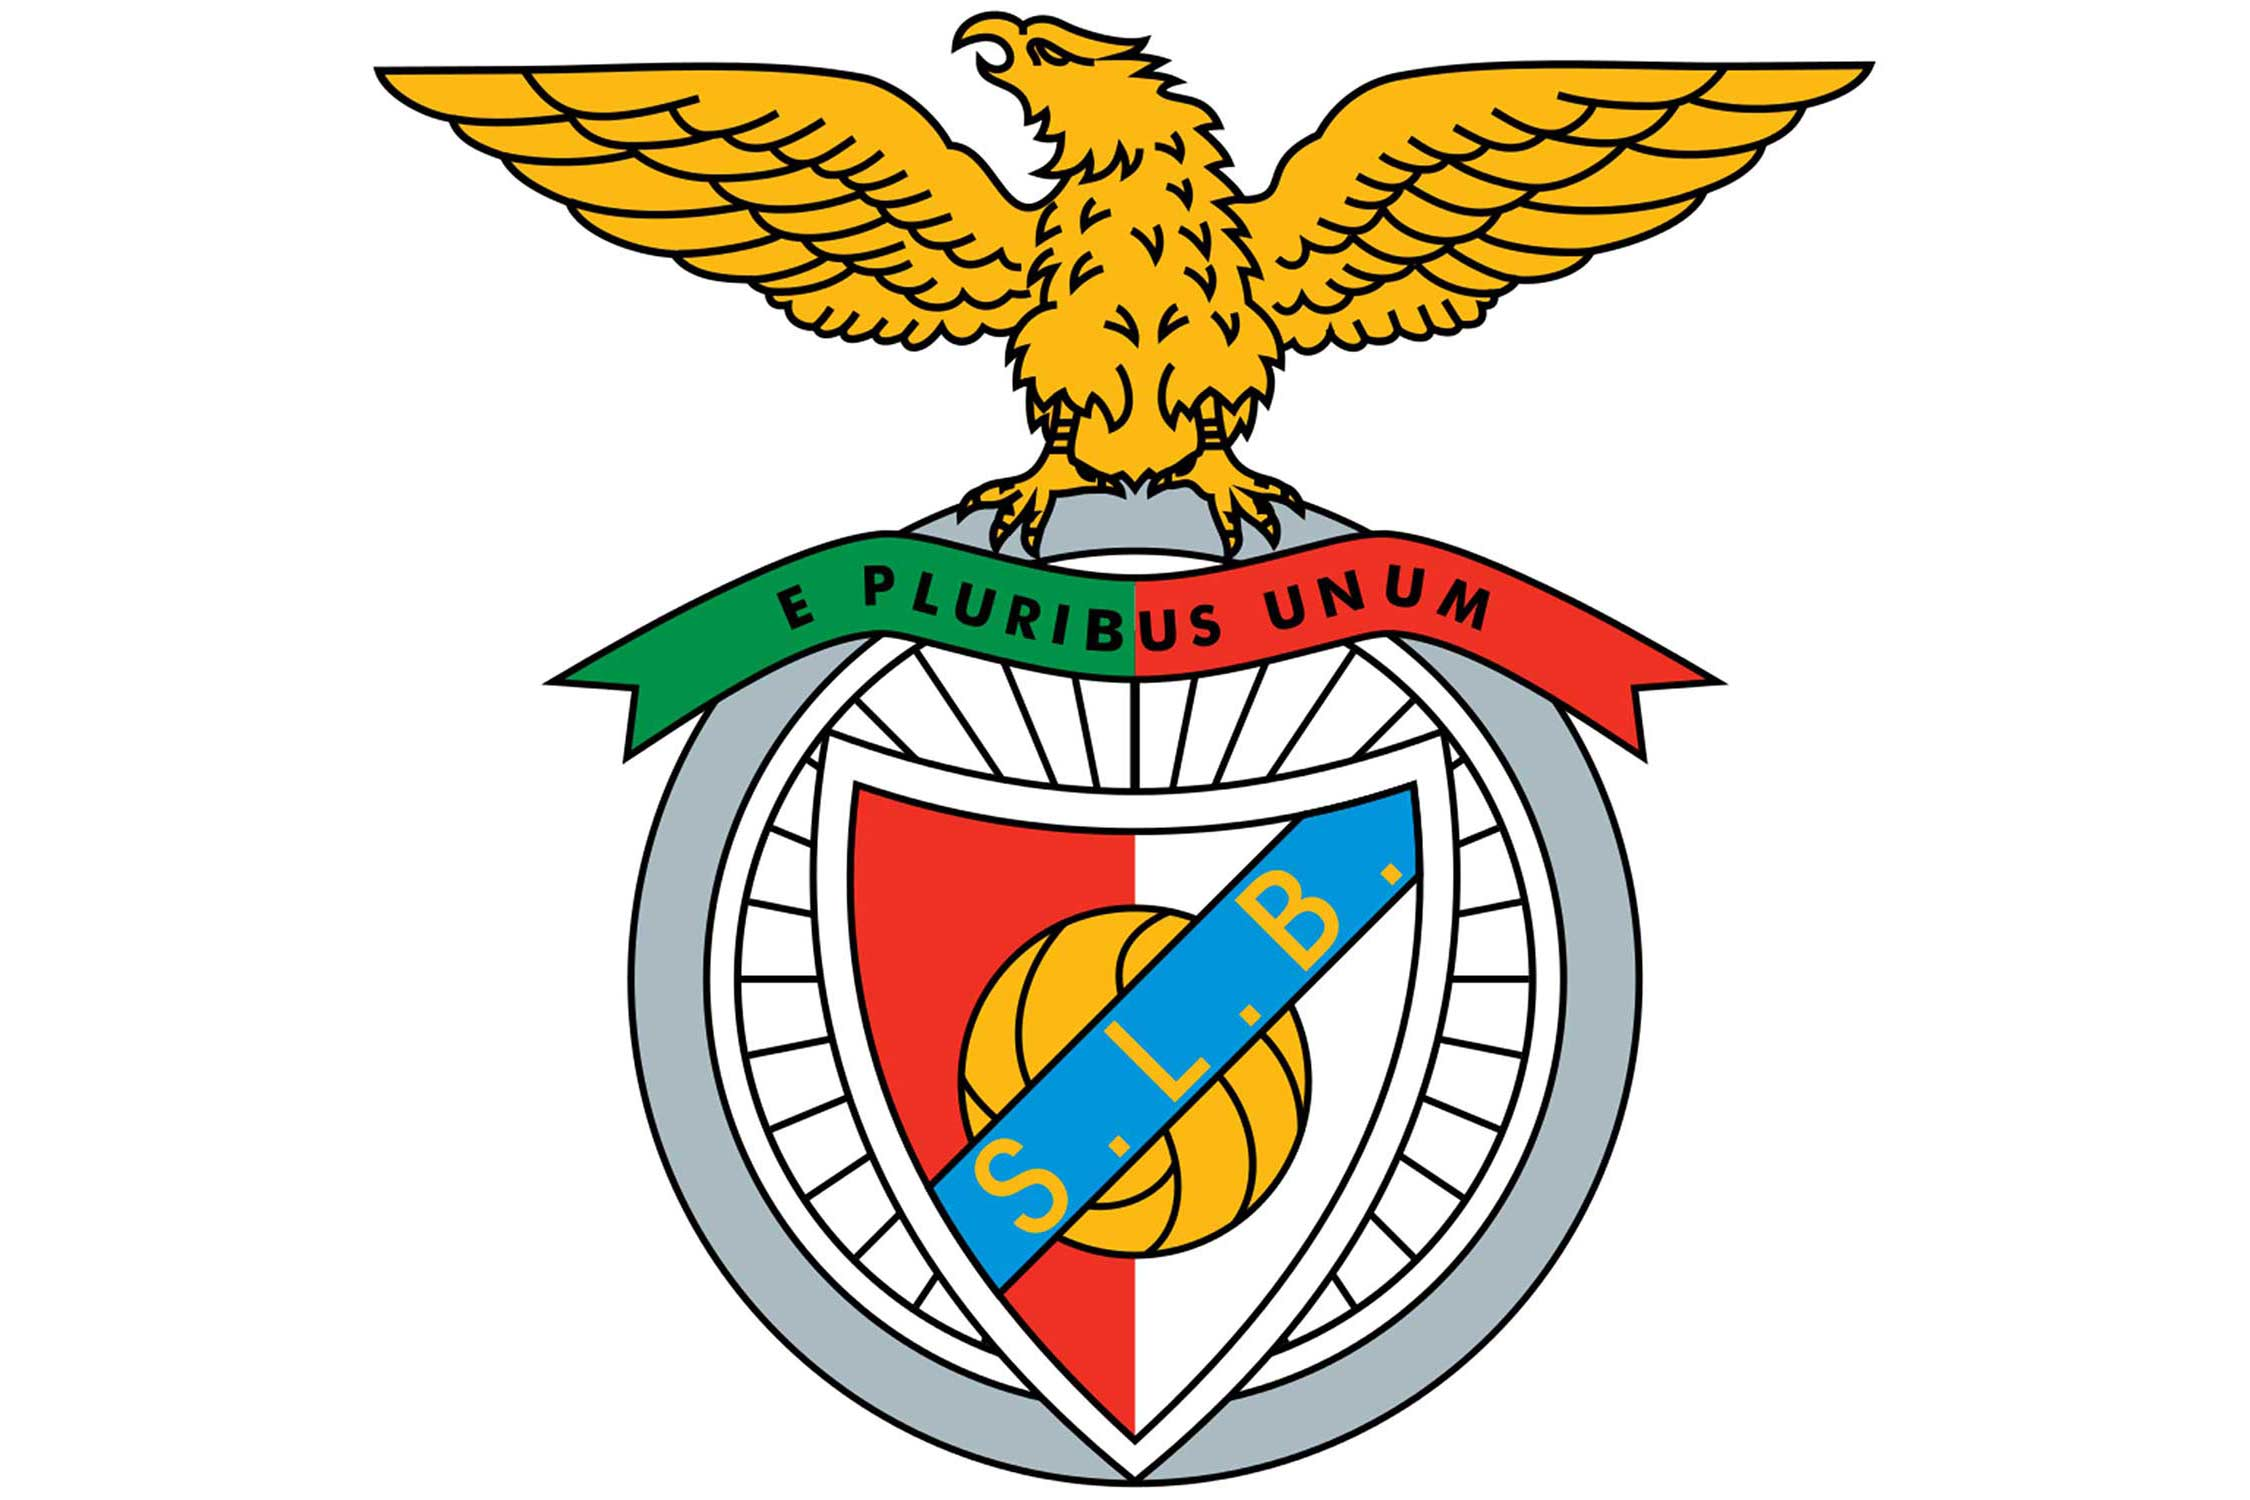 In the background of the crest of this Portuguese club is a bicycle wheel. That's because an earlier incarnation of the club, known as Grupo Sport Benfica, was initially founded with cycling as the main focus.